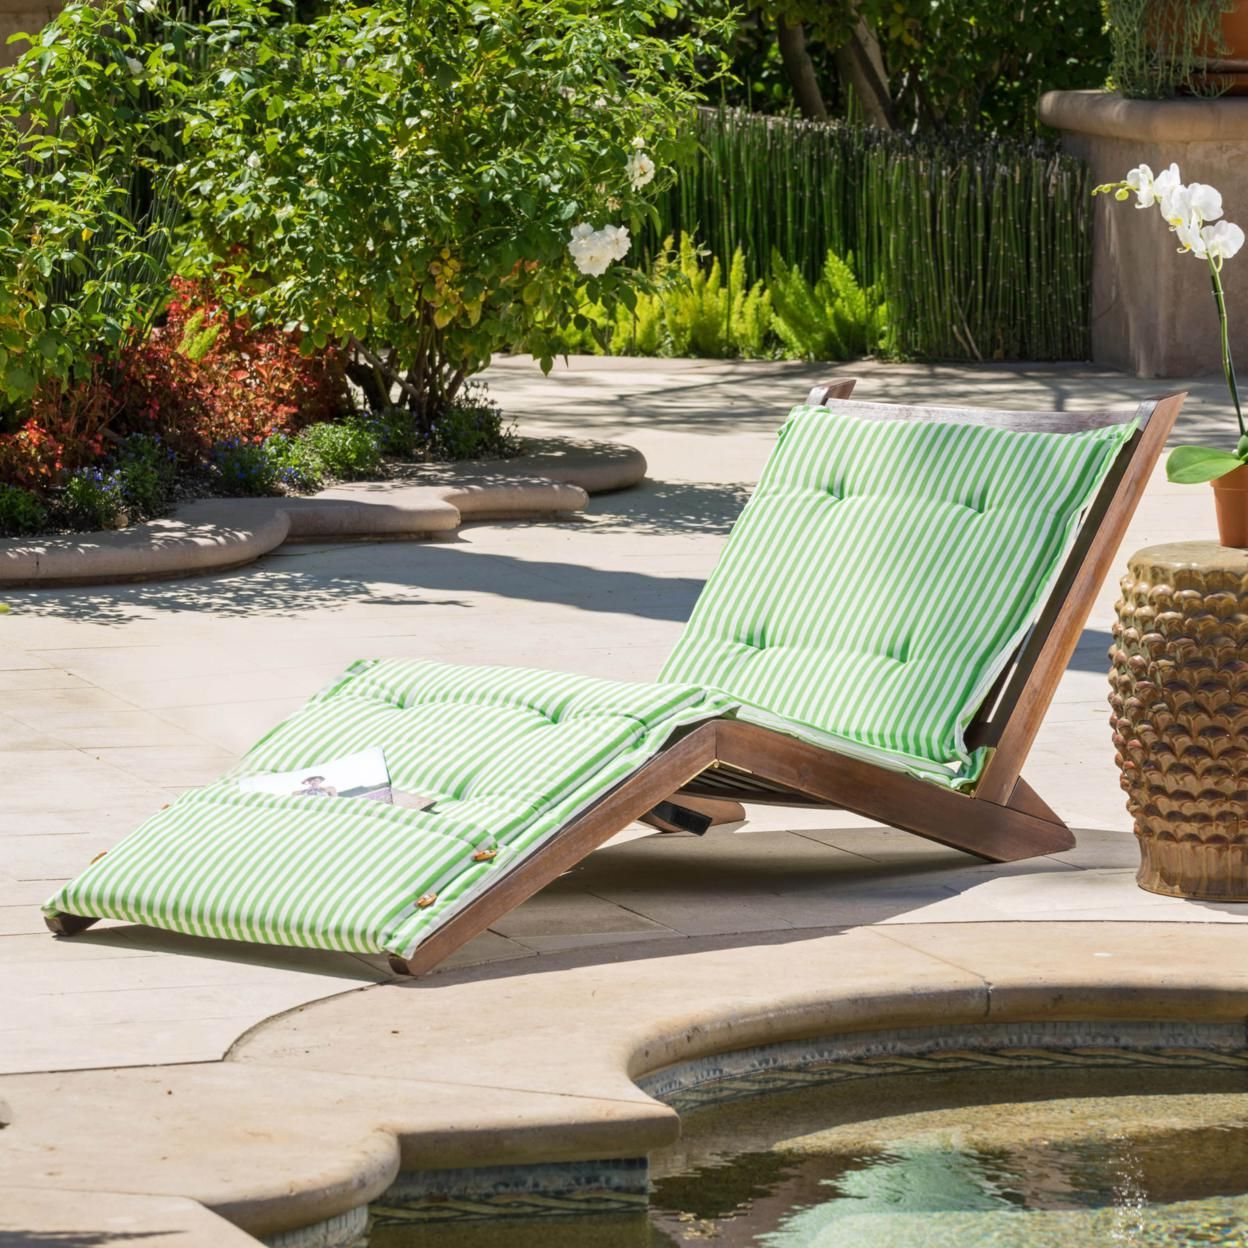 Midori Mahogany Wood Folding Chaise Lounger Chair W/ Green In Most Popular Cambridge Casual Sherwood Teak Chaise Lounges (View 20 of 25)